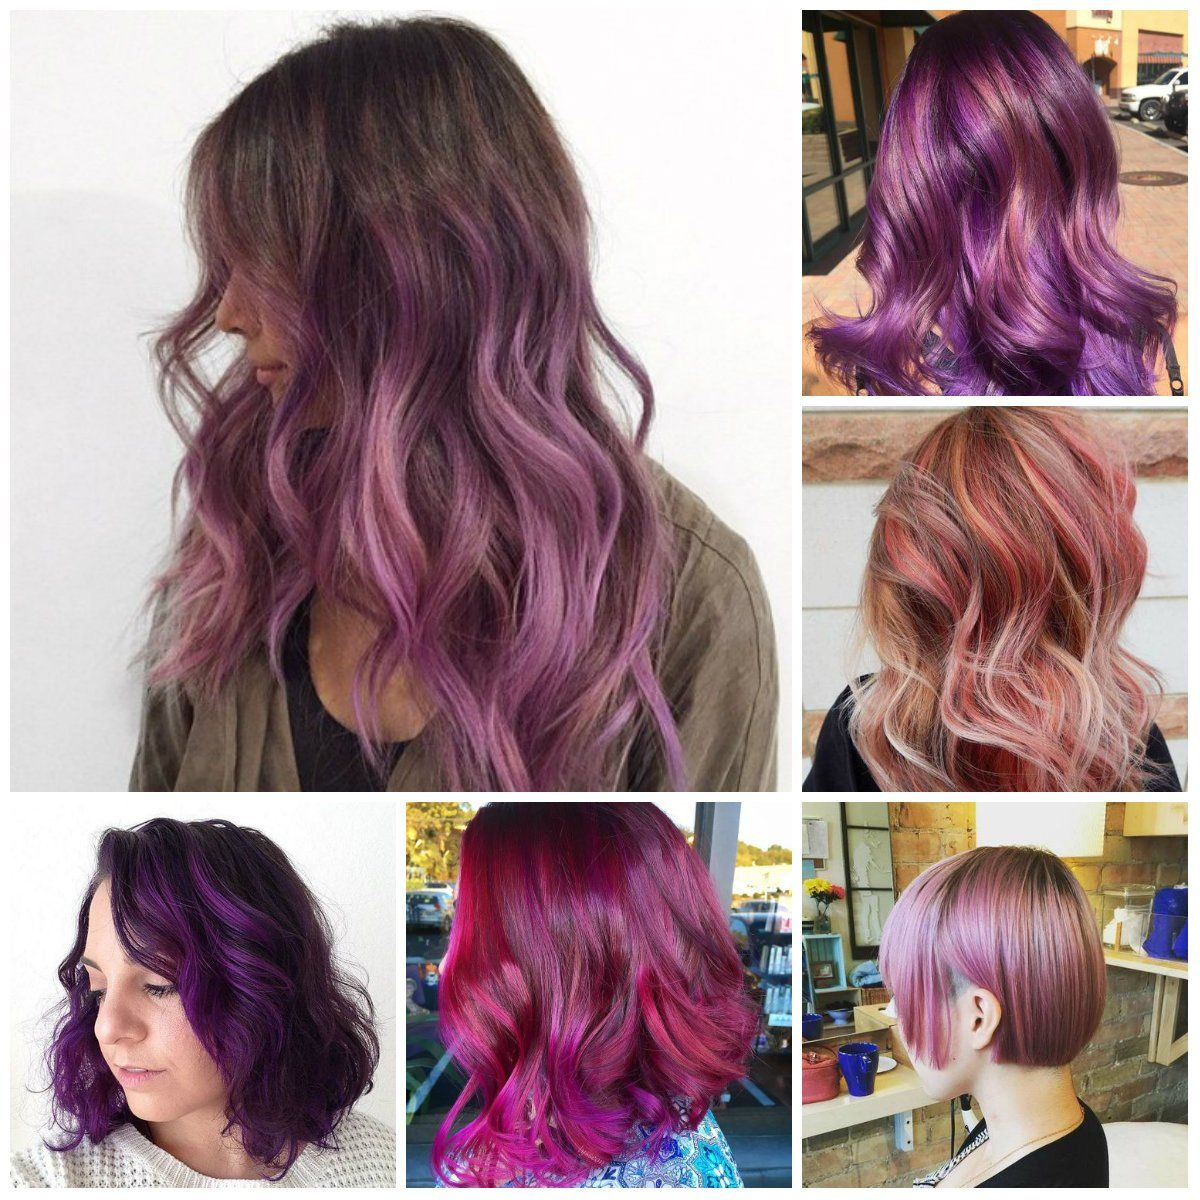 Top Simple Hacks To Use Hair Color Wax Dye in 2020